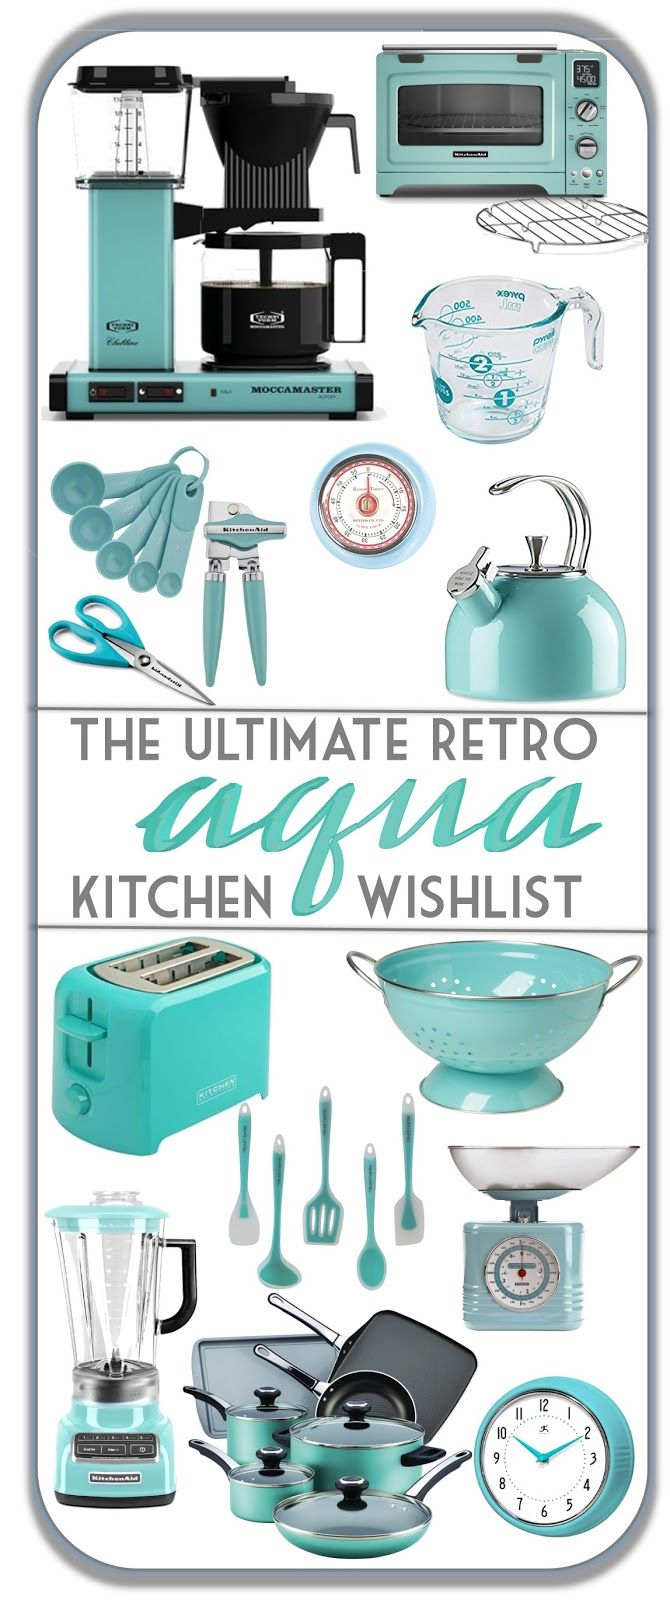 mid century kitchen must haves in aqua turquoise robin egg blue. love the retro vintage vibe of these kitchen gadgets! ultimate wishlist, indeed. From Sew at Home Mummy